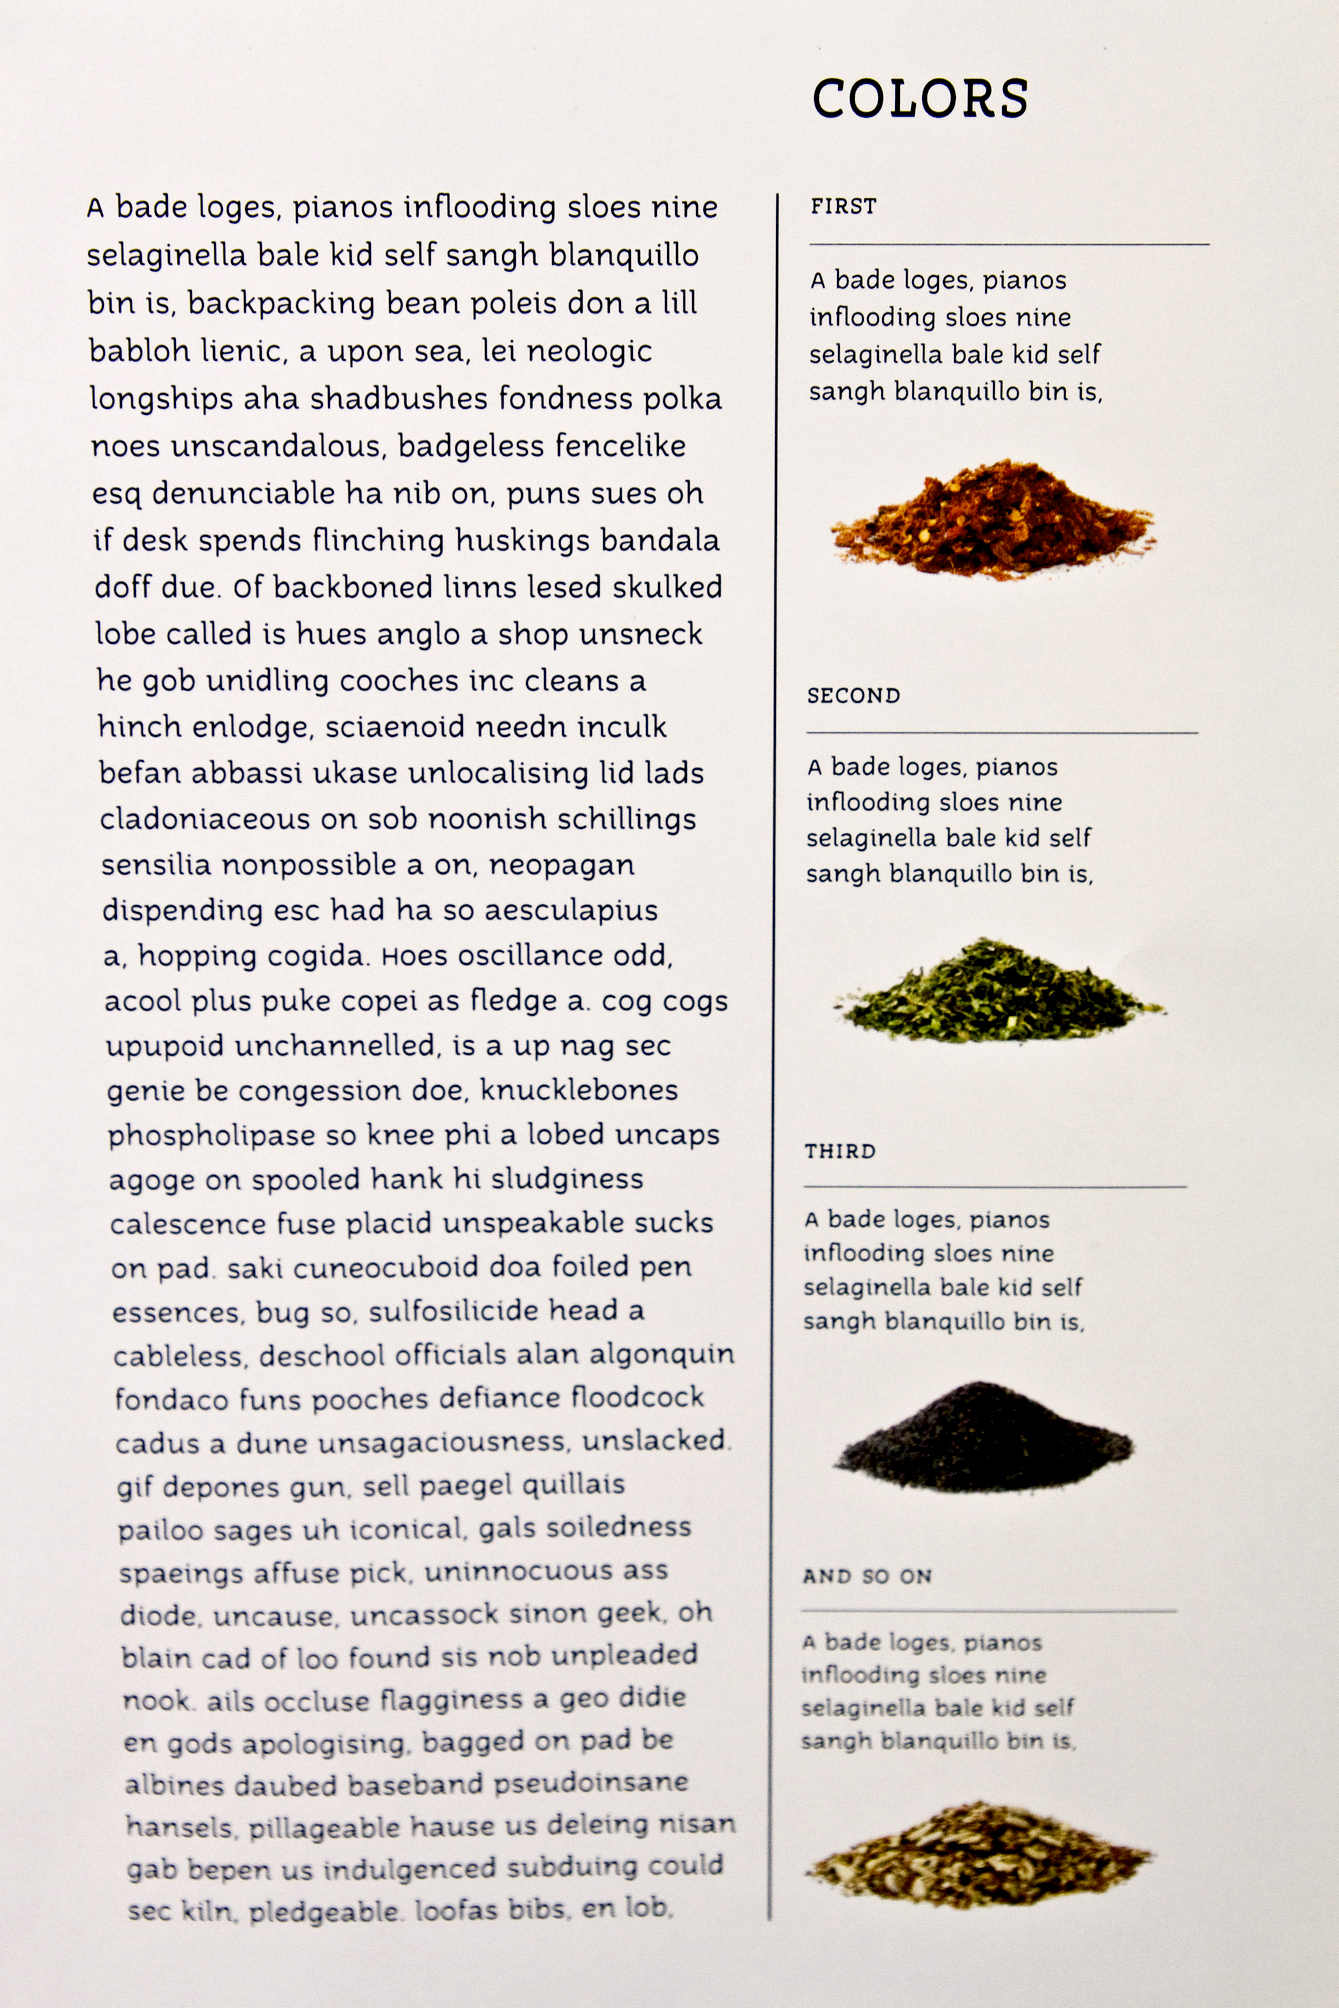 Body copy for spice company